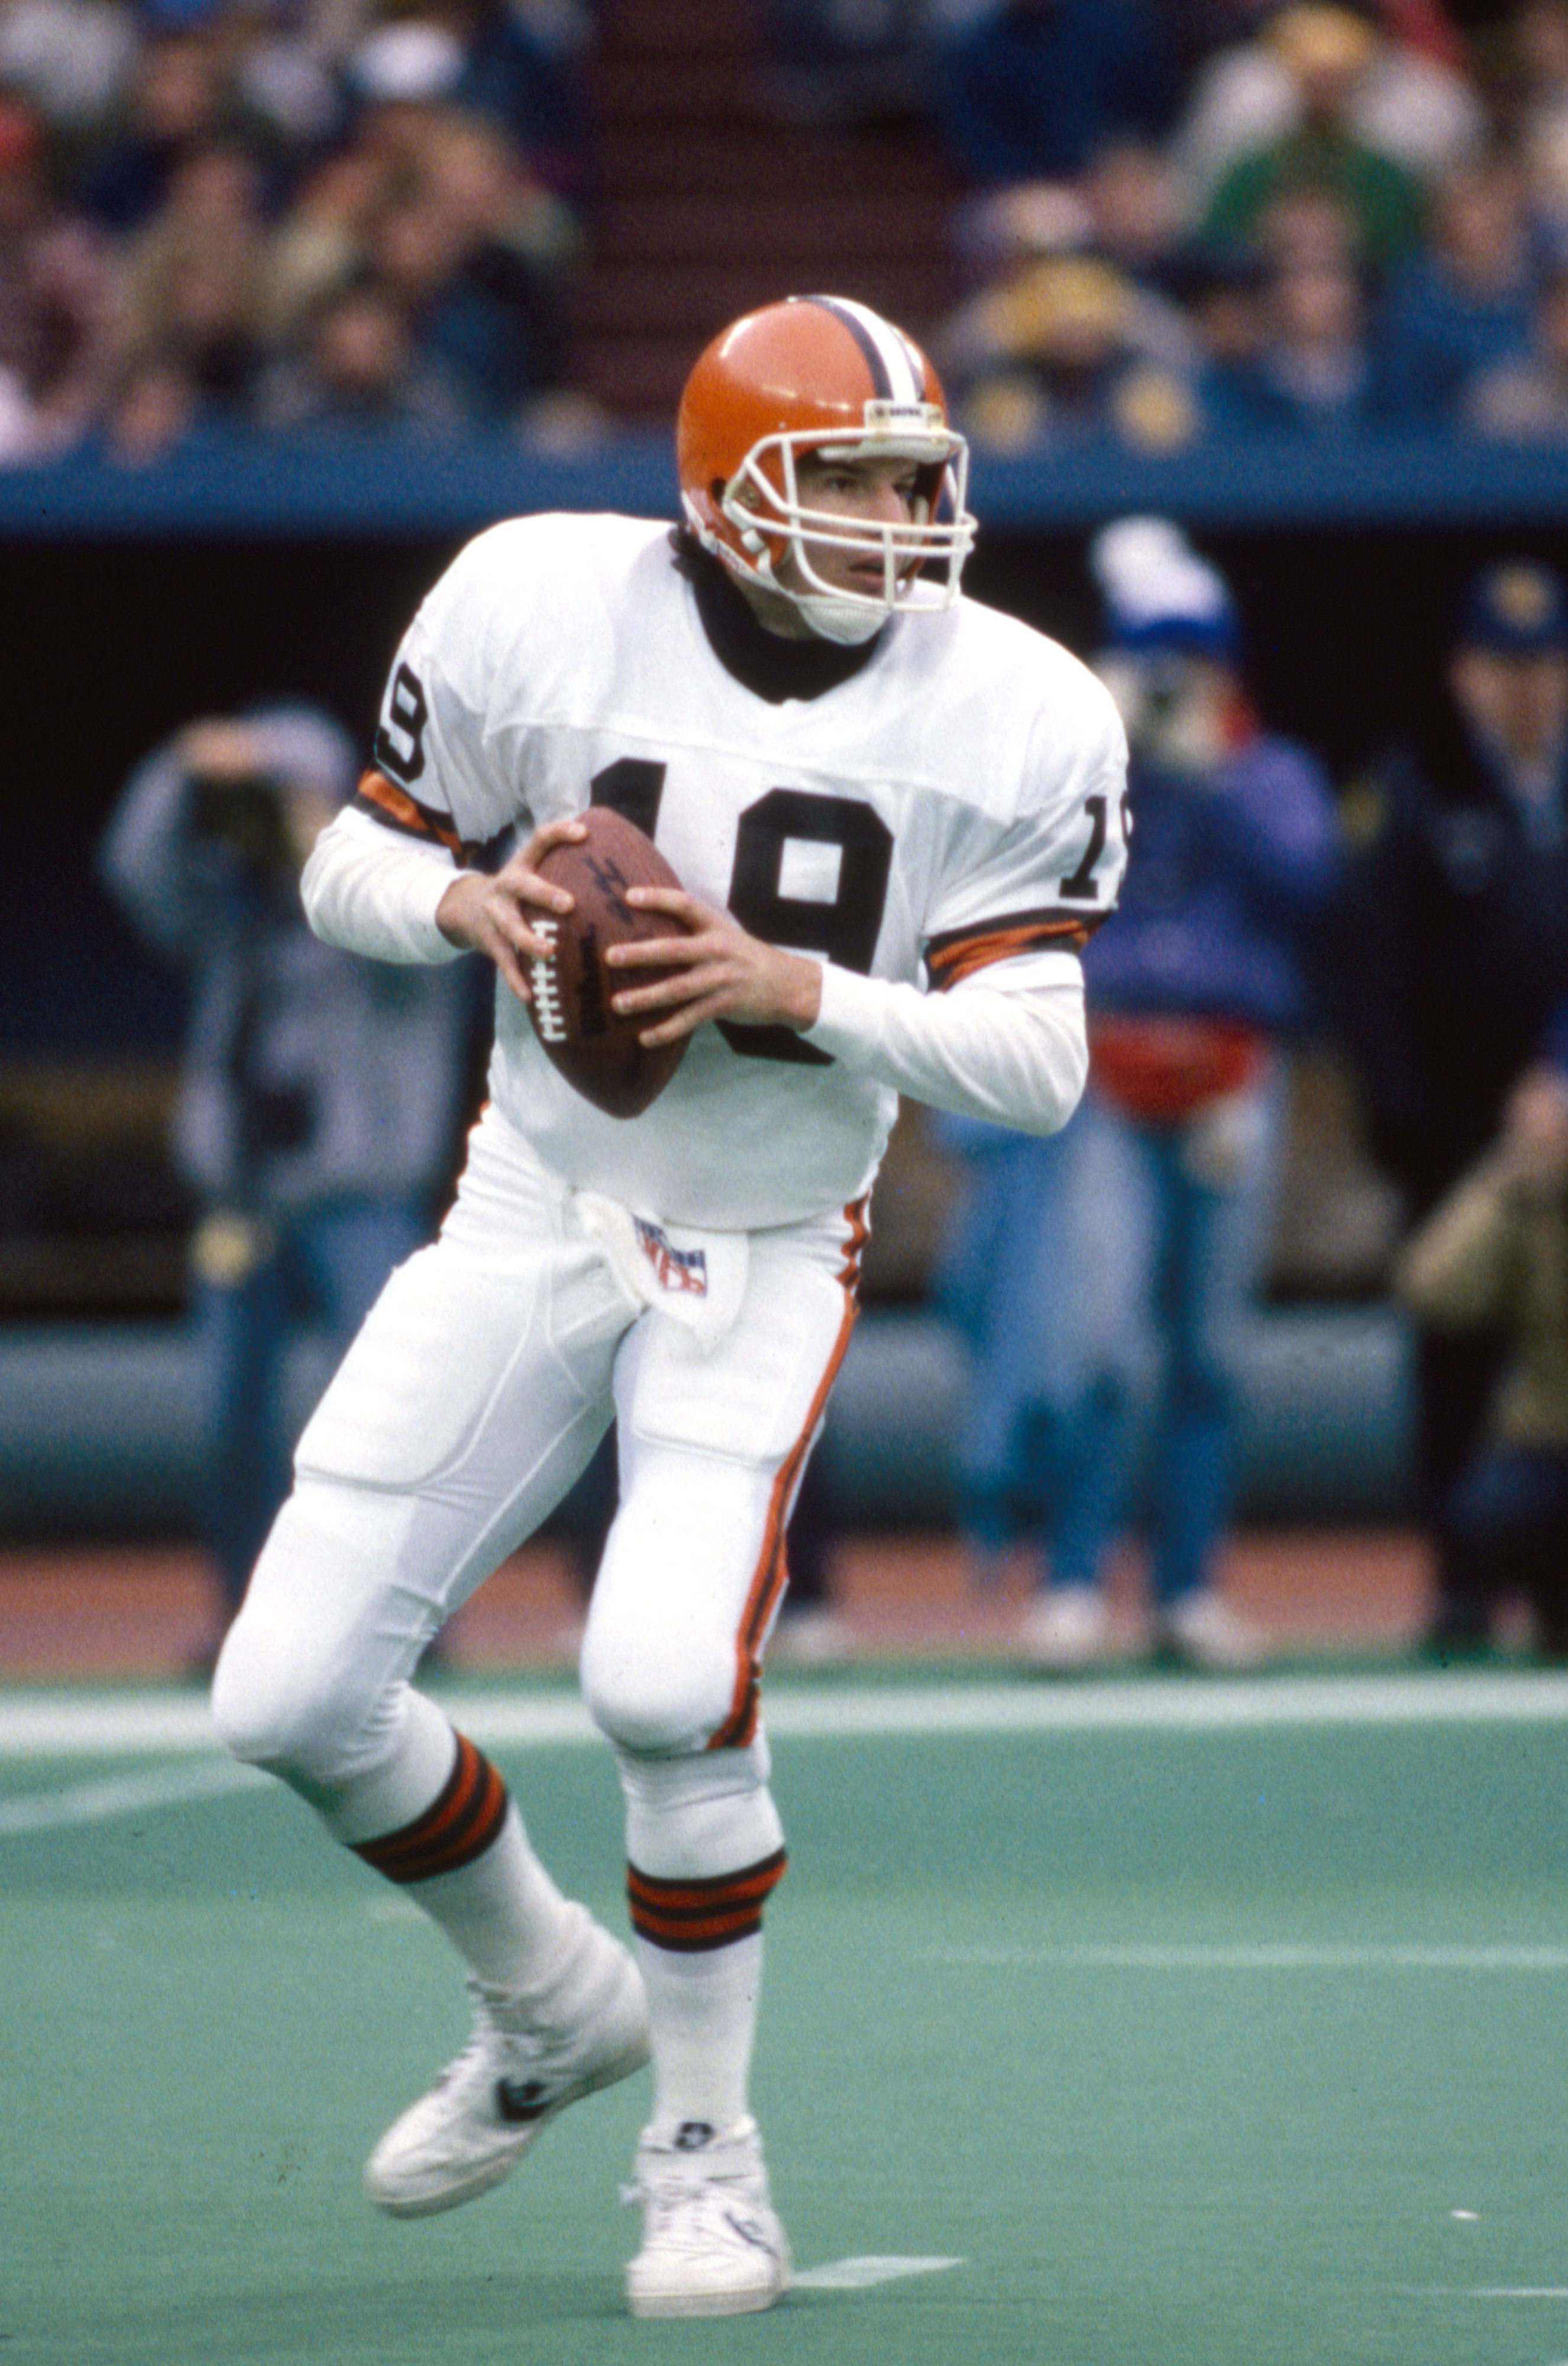 THIS GUY quarterbacked the Browns in 1987, the first year the Saints ever made the playoffs.